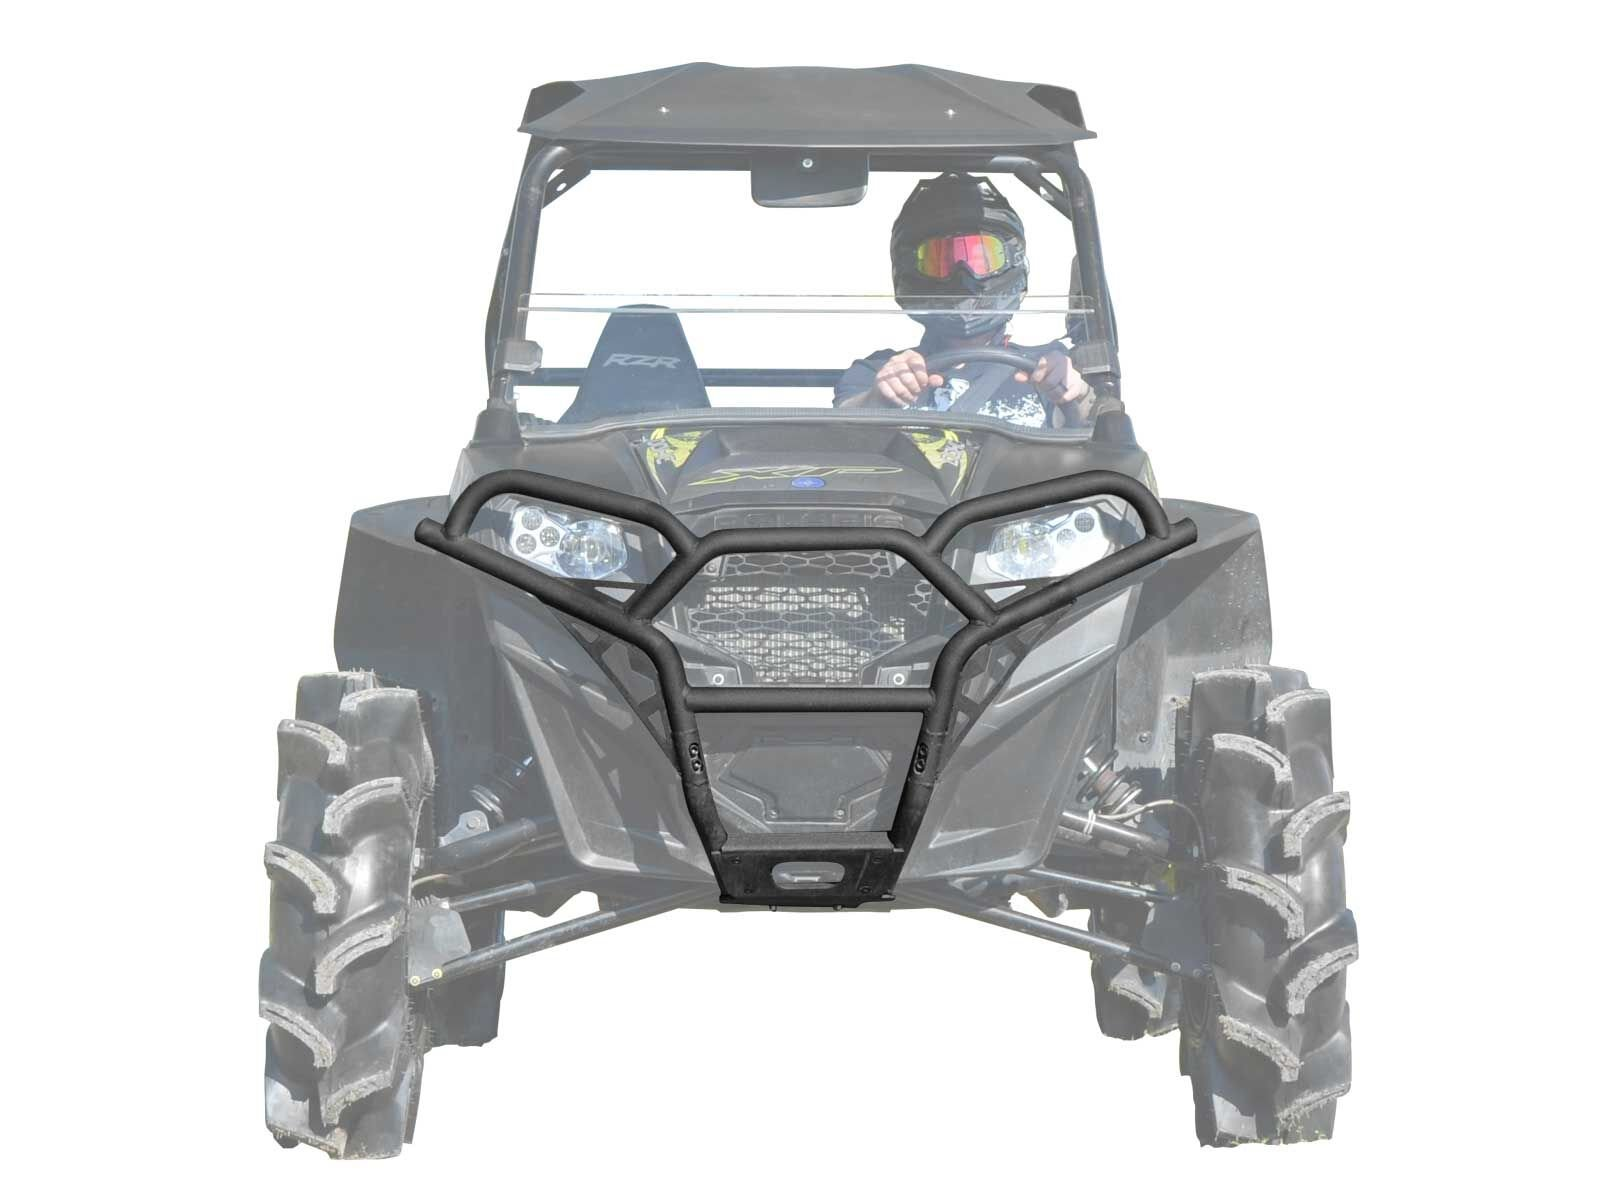 SuperATV Polaris RZR / RZR 800 / RZR 800 S / RZR XP 900 / RZR 570 / RZR XP 4 900 Sport Front Brush Guard Bumper - Wrinkle Black by SuperATV.com